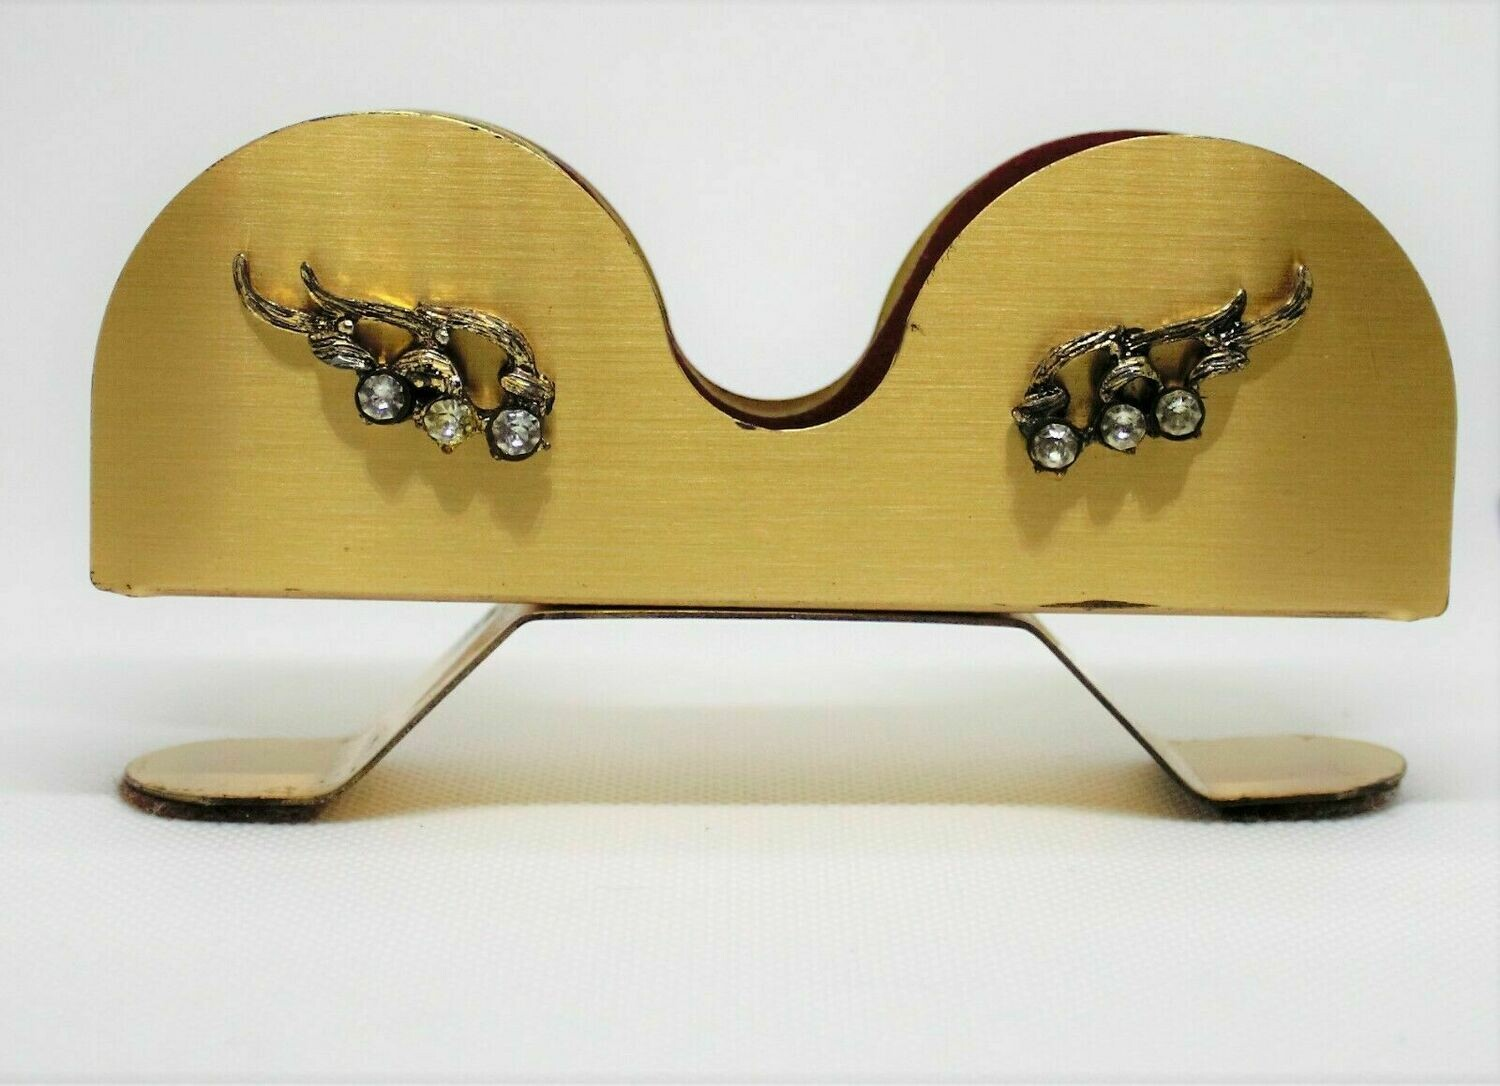 Vintage Antique Crazy Cats Eye Eyeglass Holder with Rhinestones